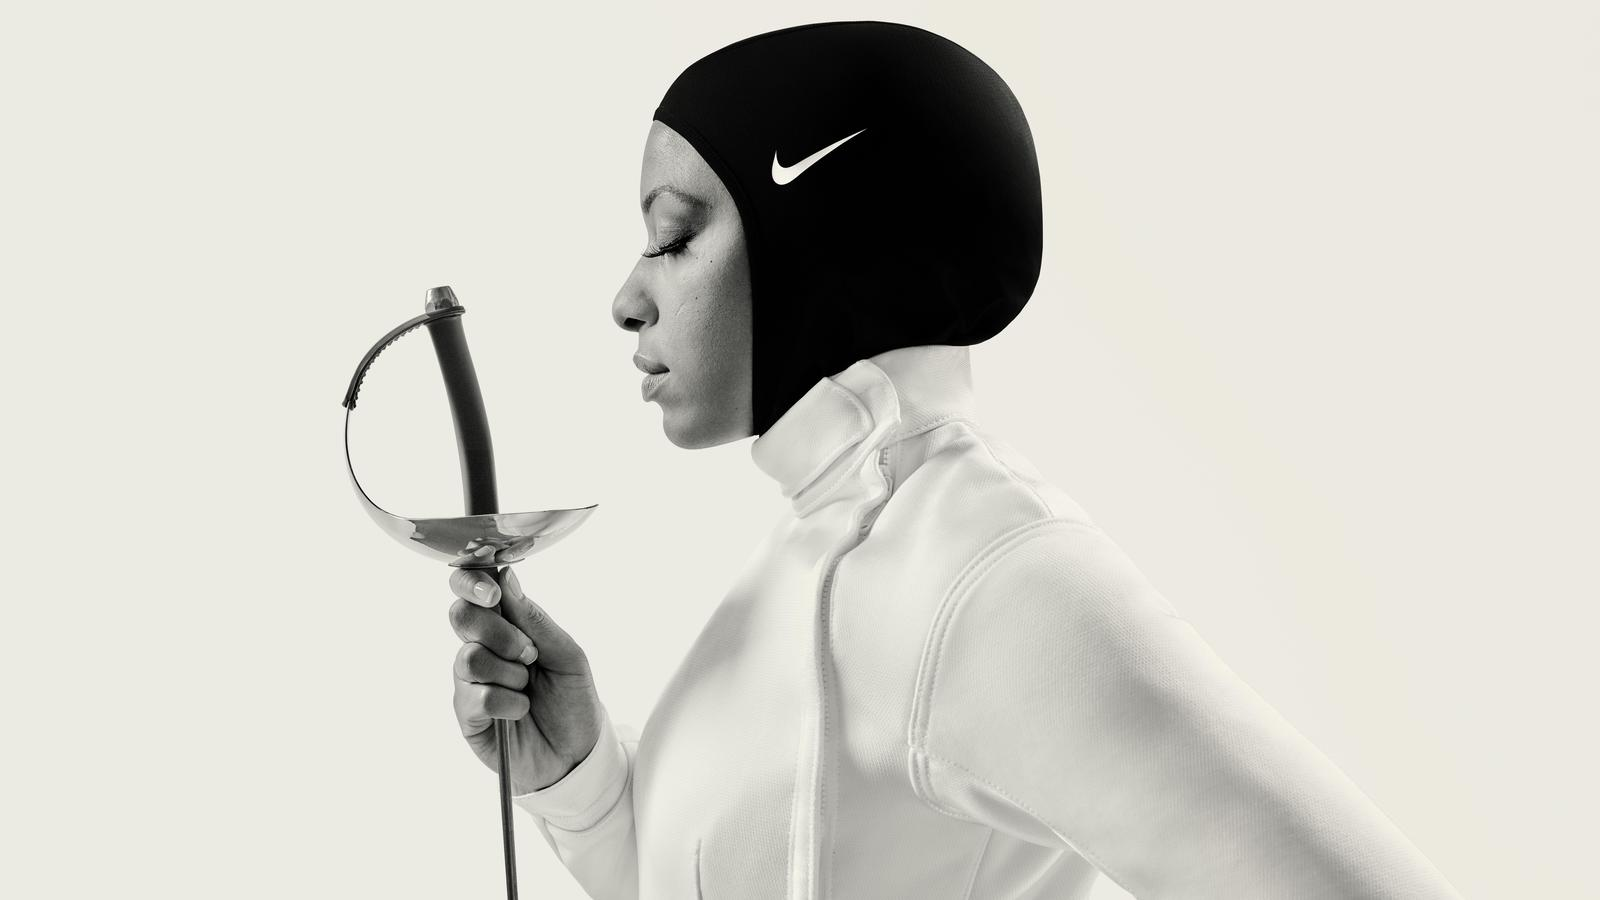 construcción naval embarazada James Dyson  The Nike Pro Hijab Goes Global - Nike News